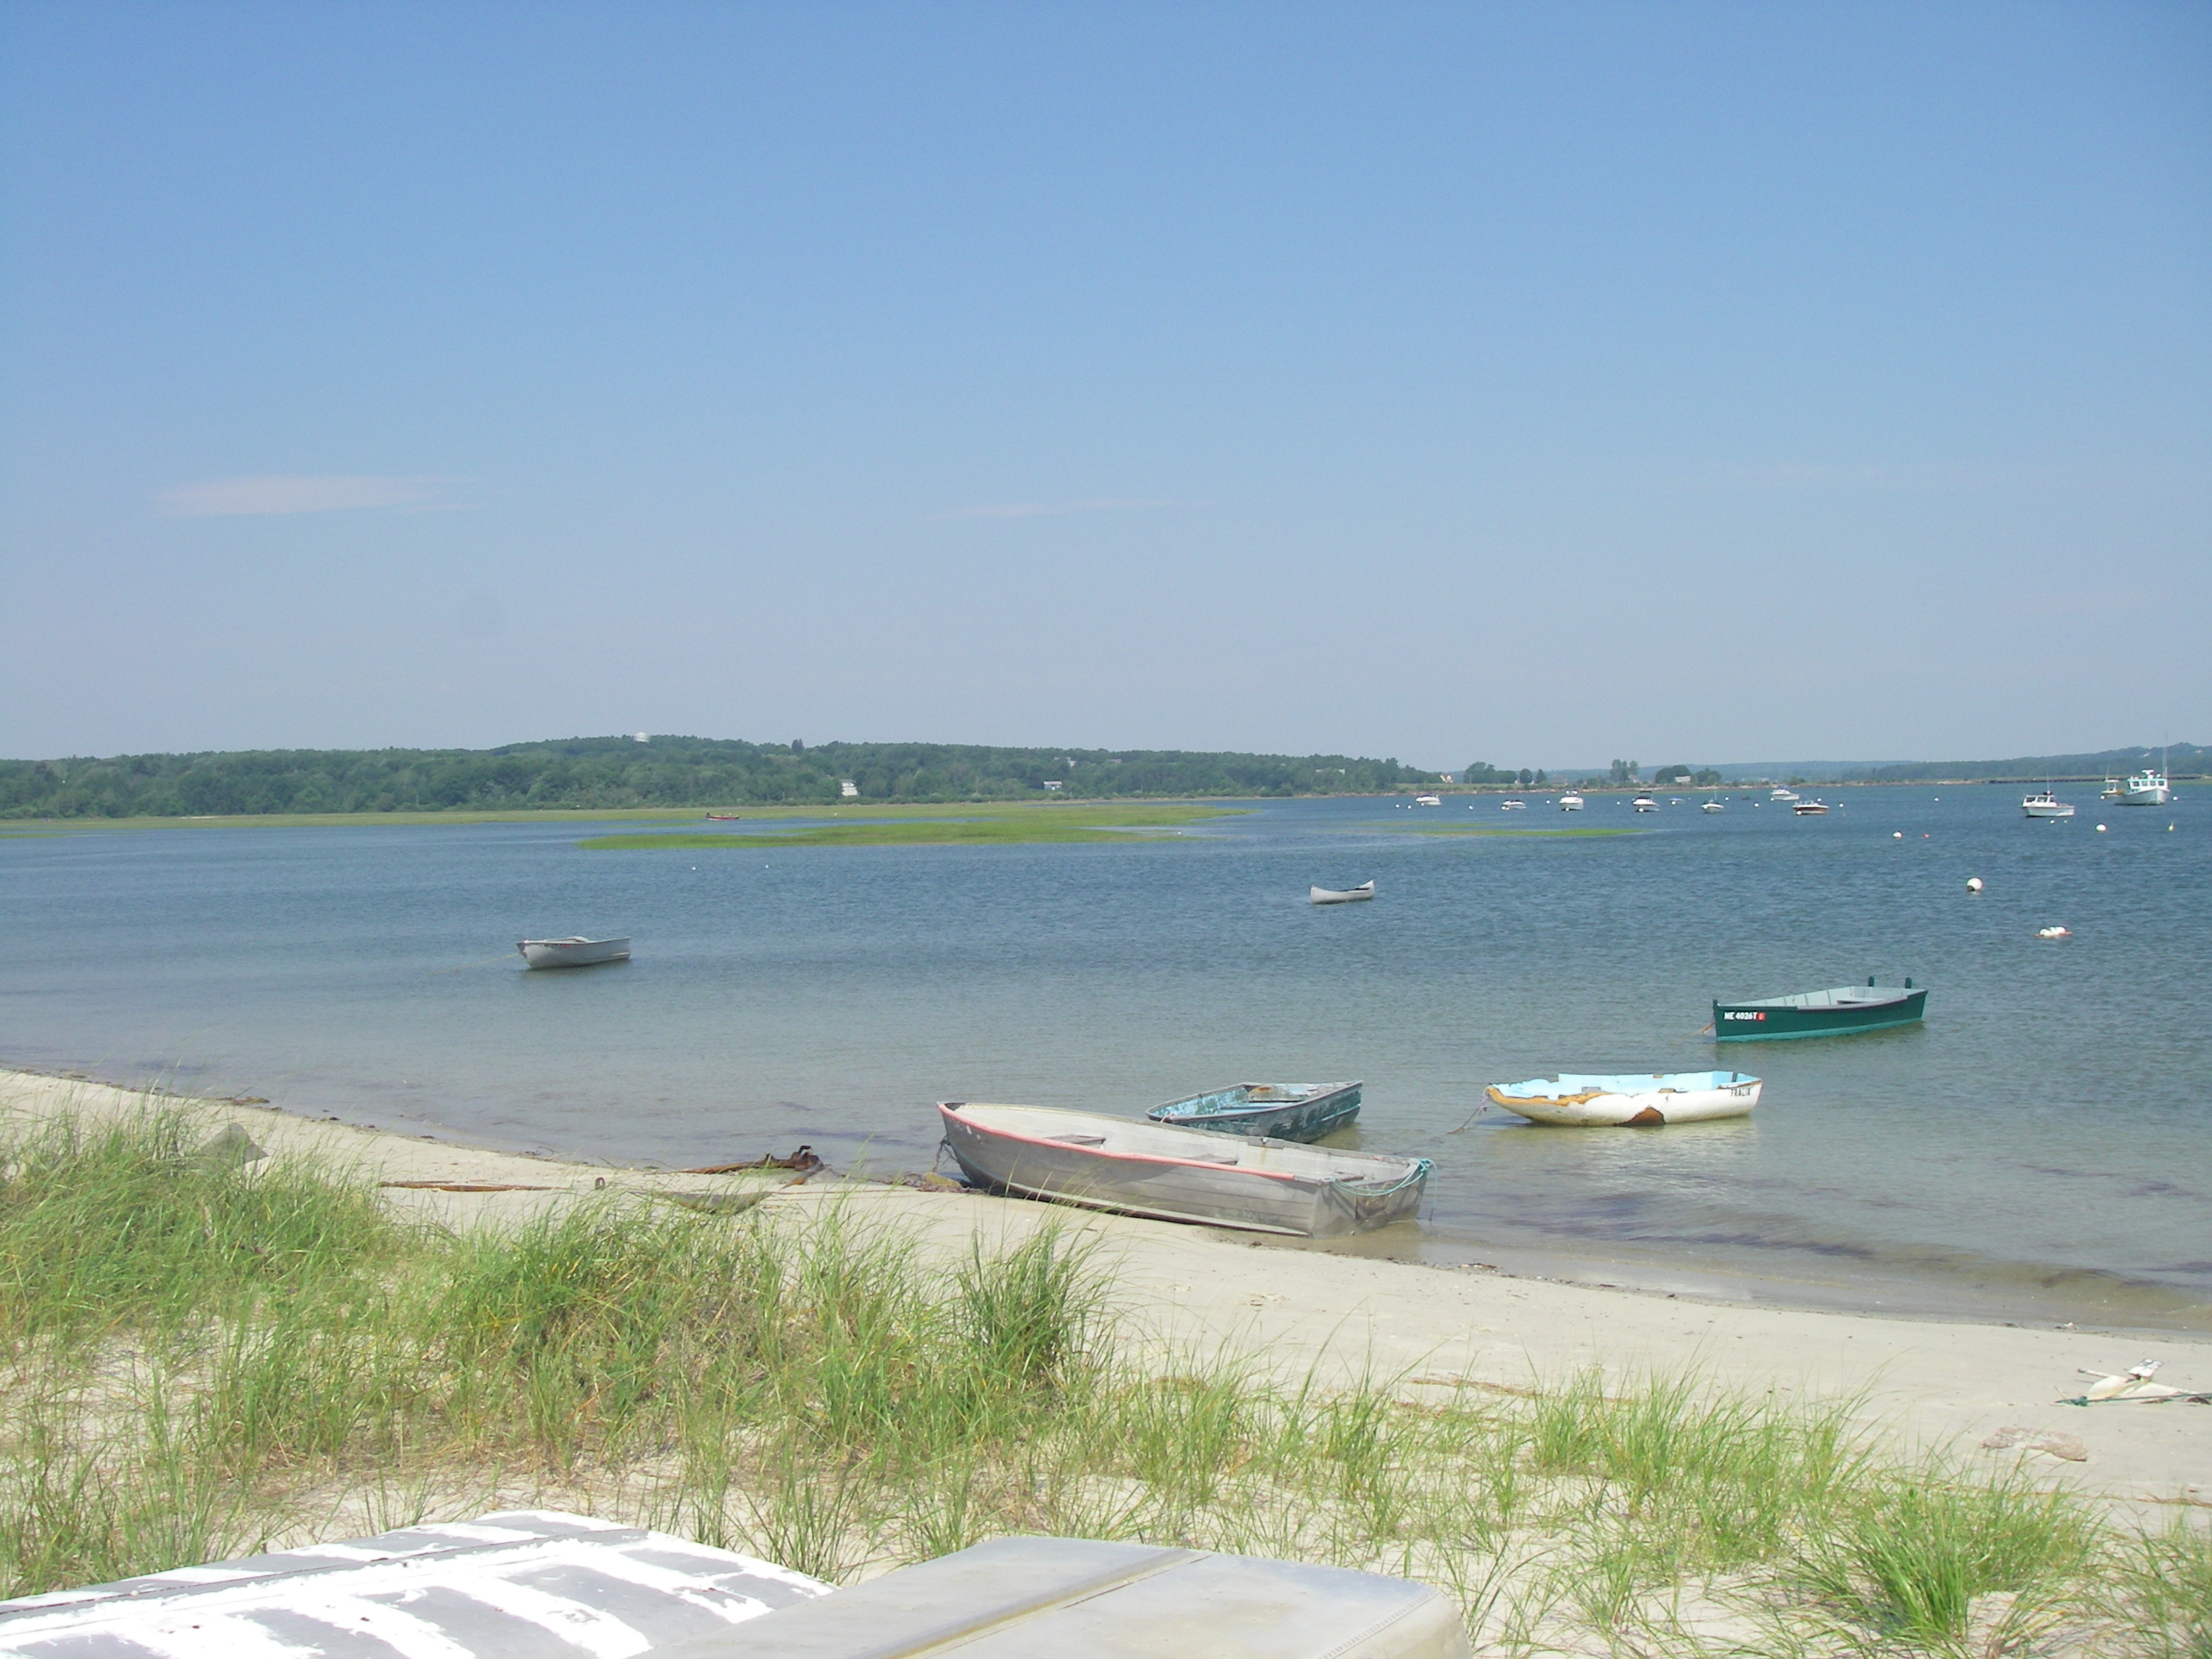 Click image for larger version  Name:maine 003.jpg Views:79 Size:2.17 MB ID:8763